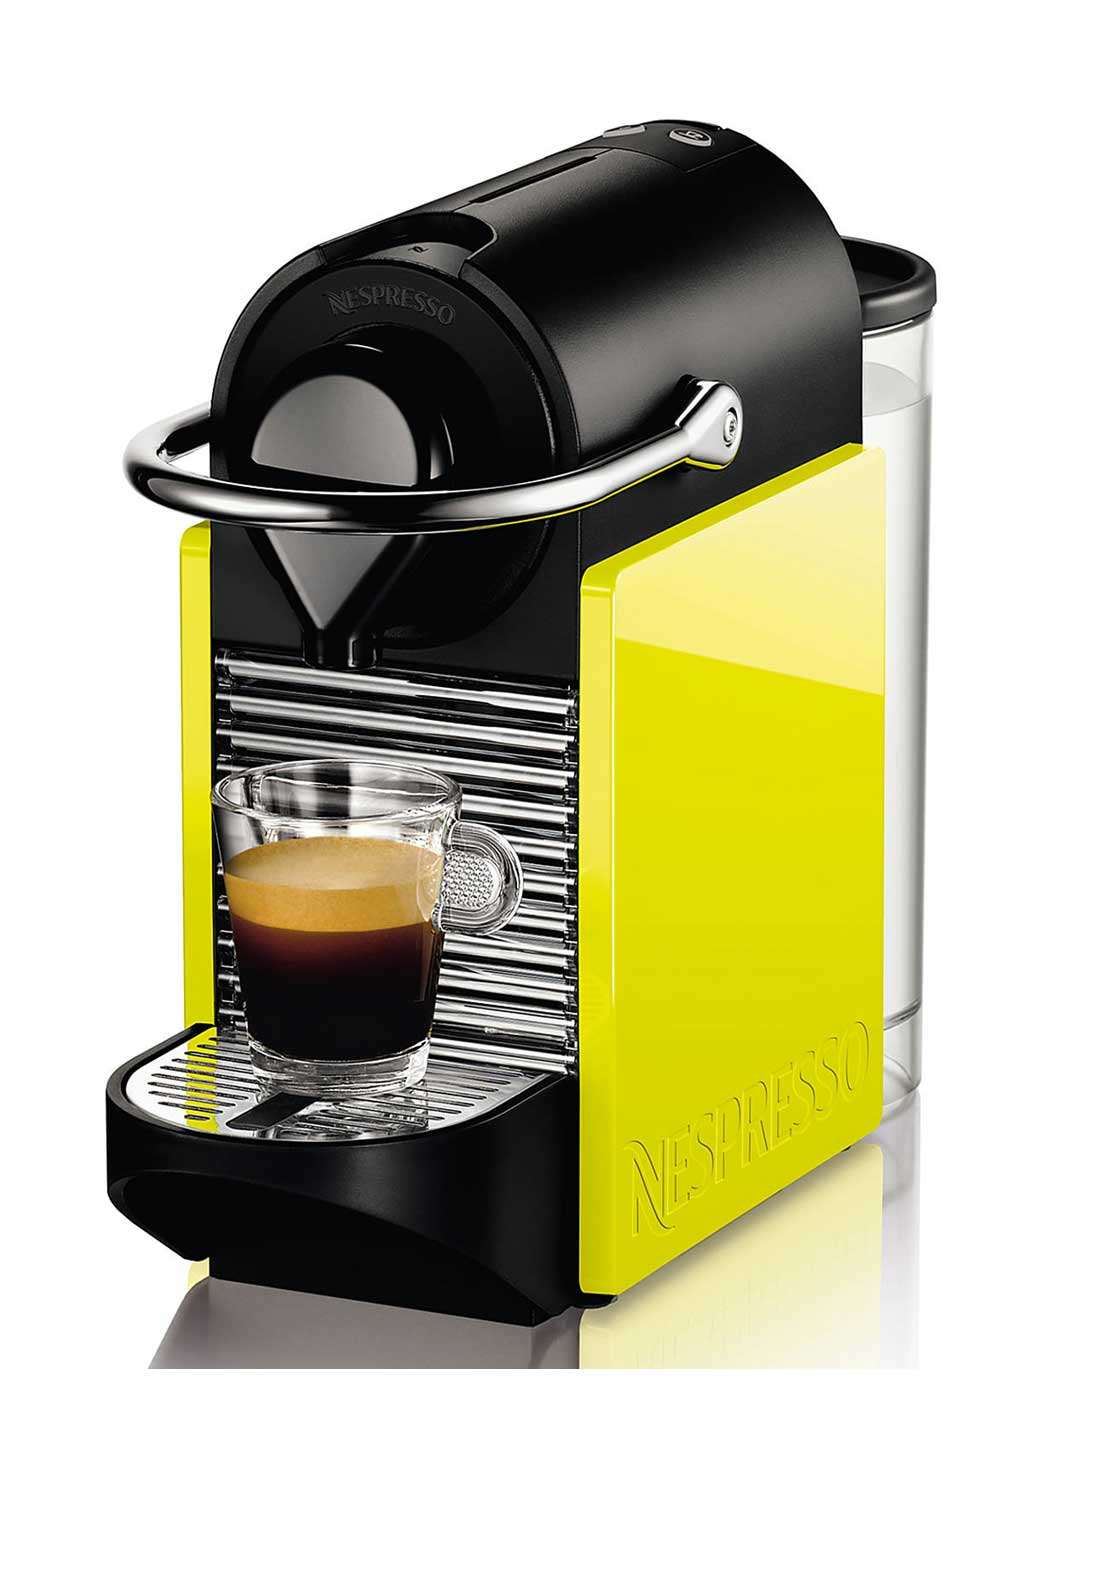 Nespresso Pixie Clips Krups Coffee Machine, Neon Yellow and Black